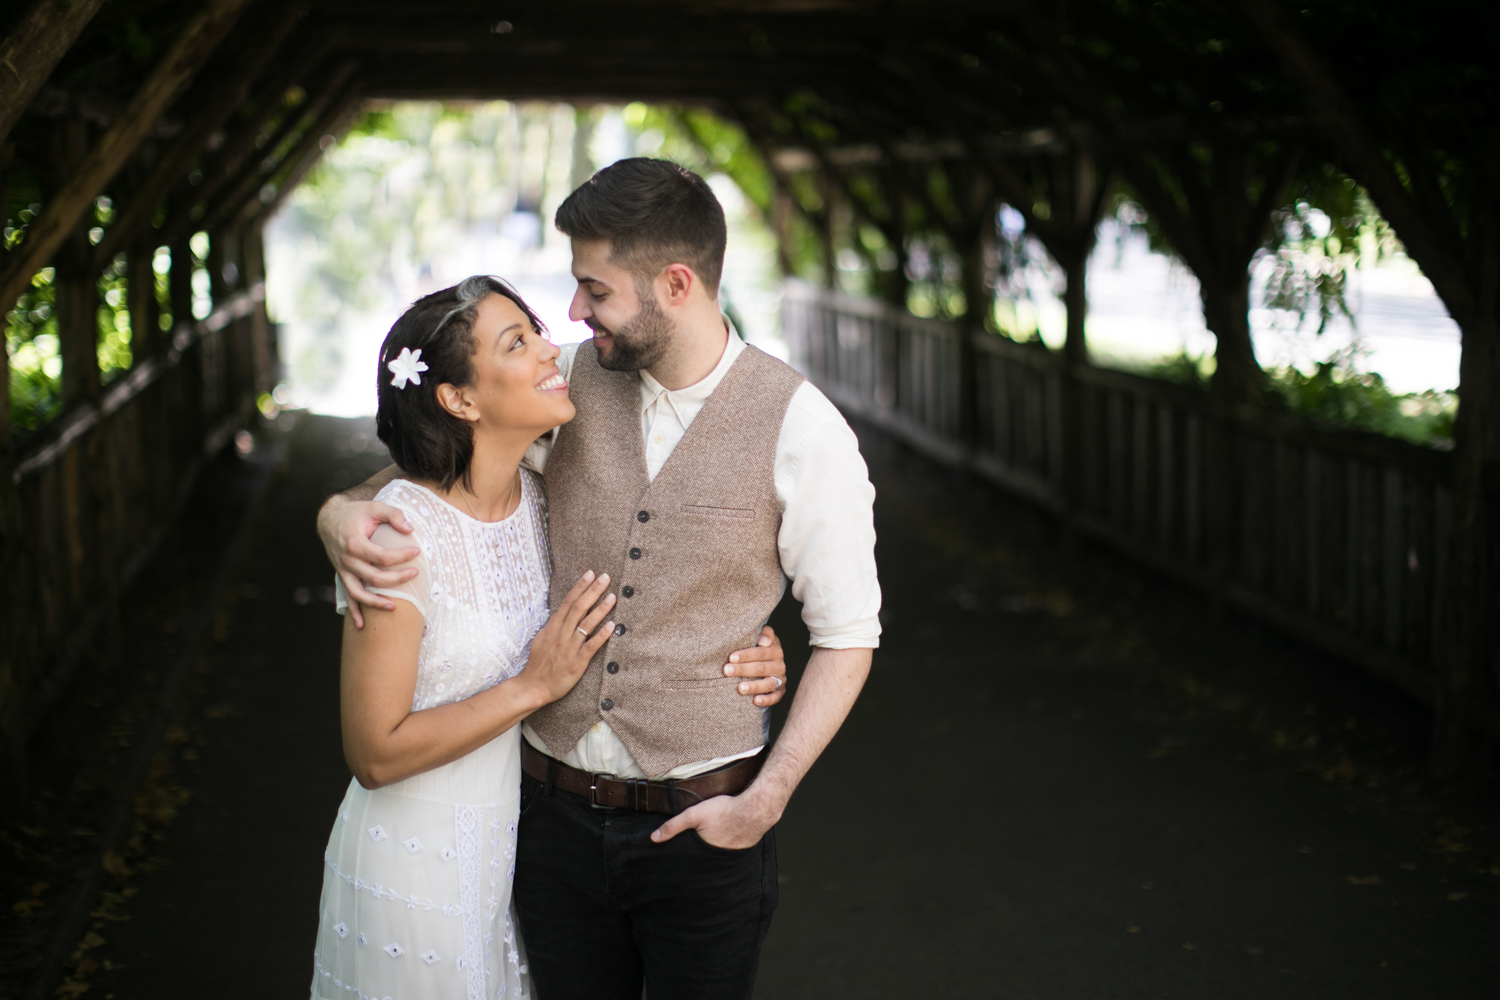 Portrait of newlyweds together in New York City.